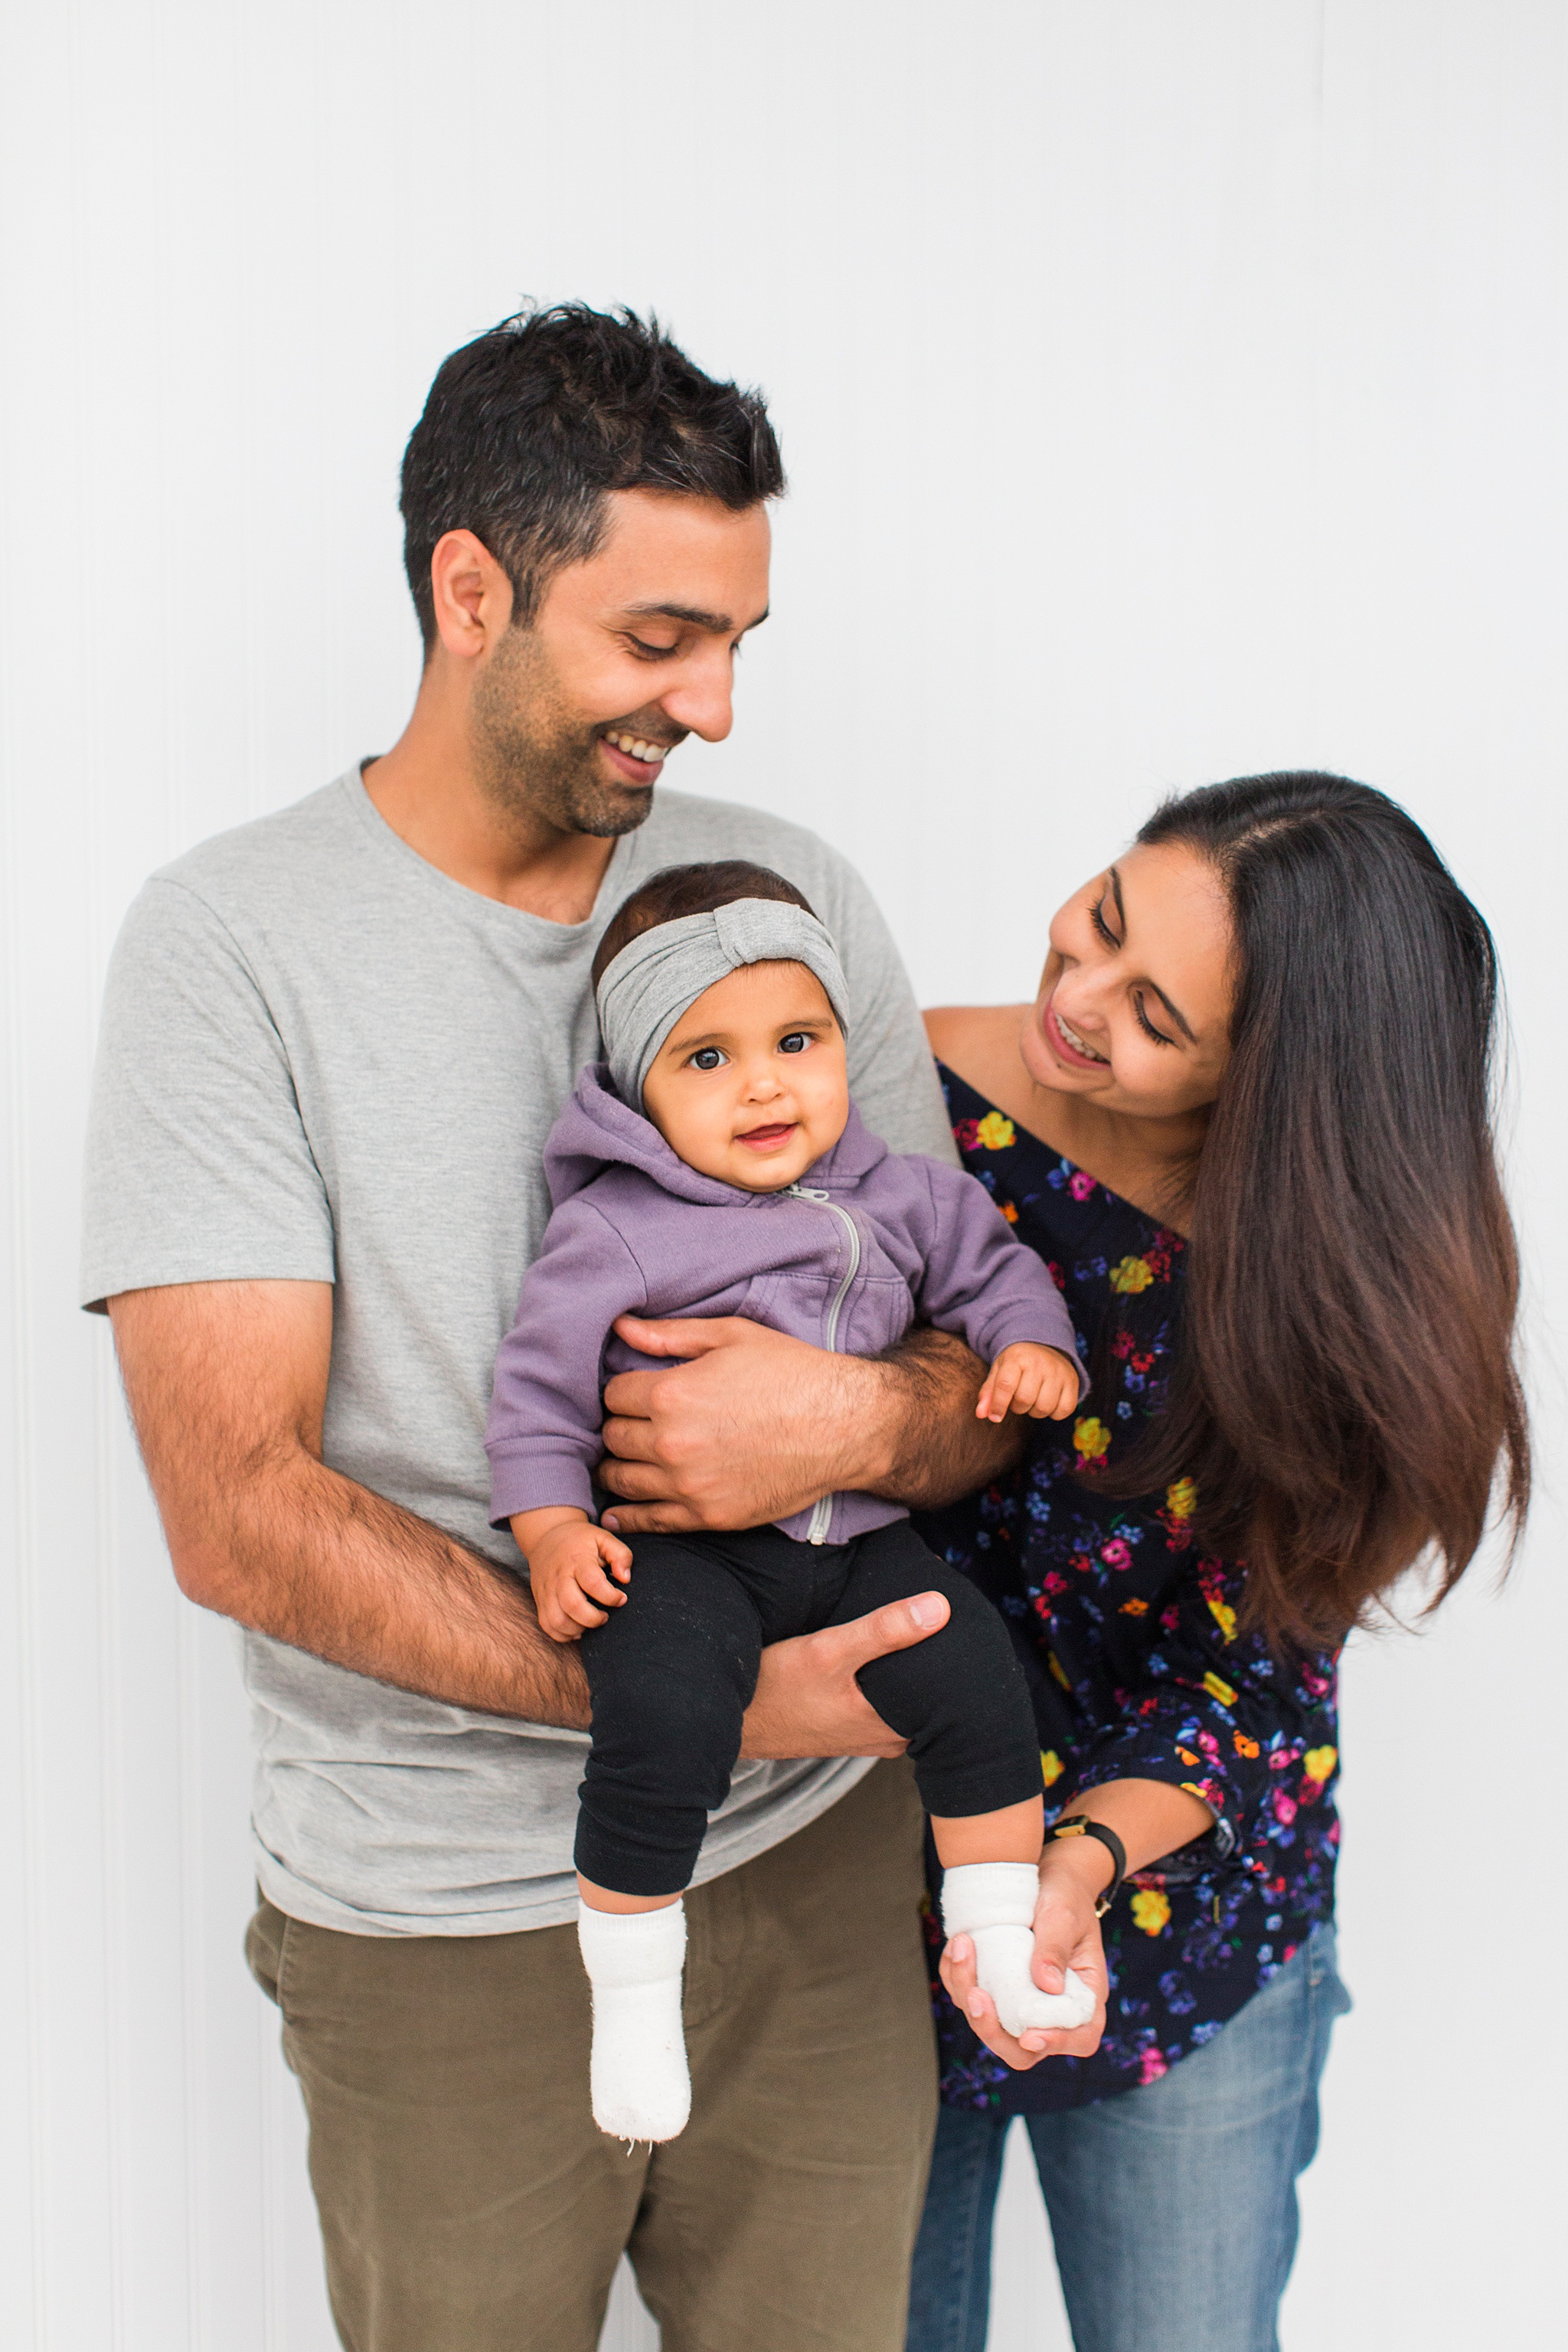 edmonton family photographer-721.JPG